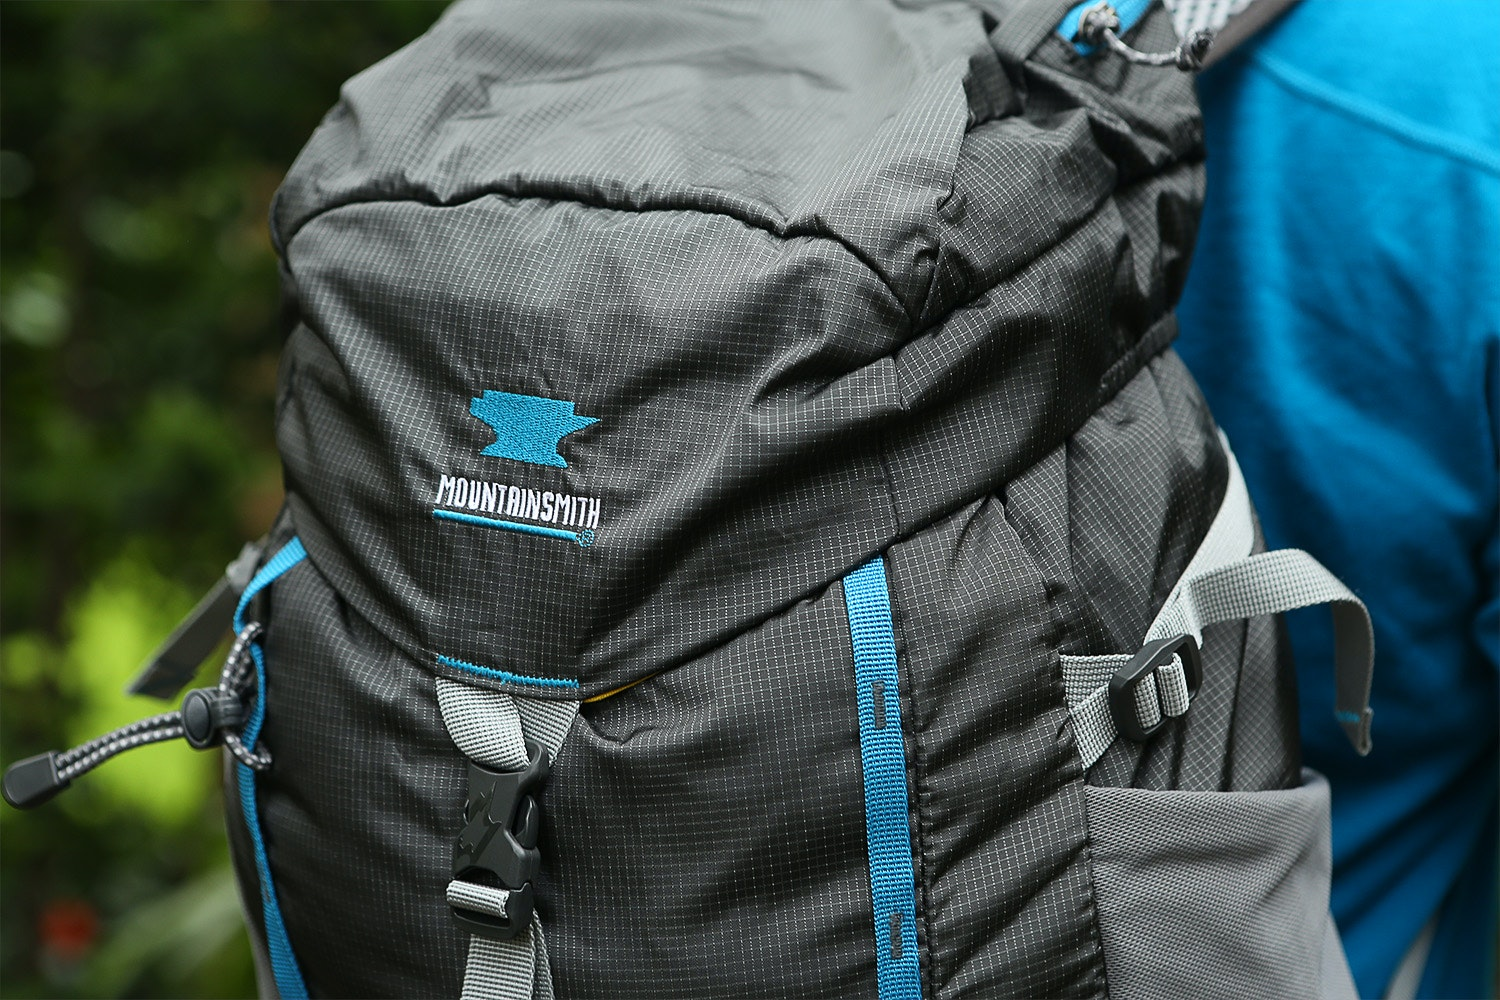 Mountainsmith Scream 25 Backpack